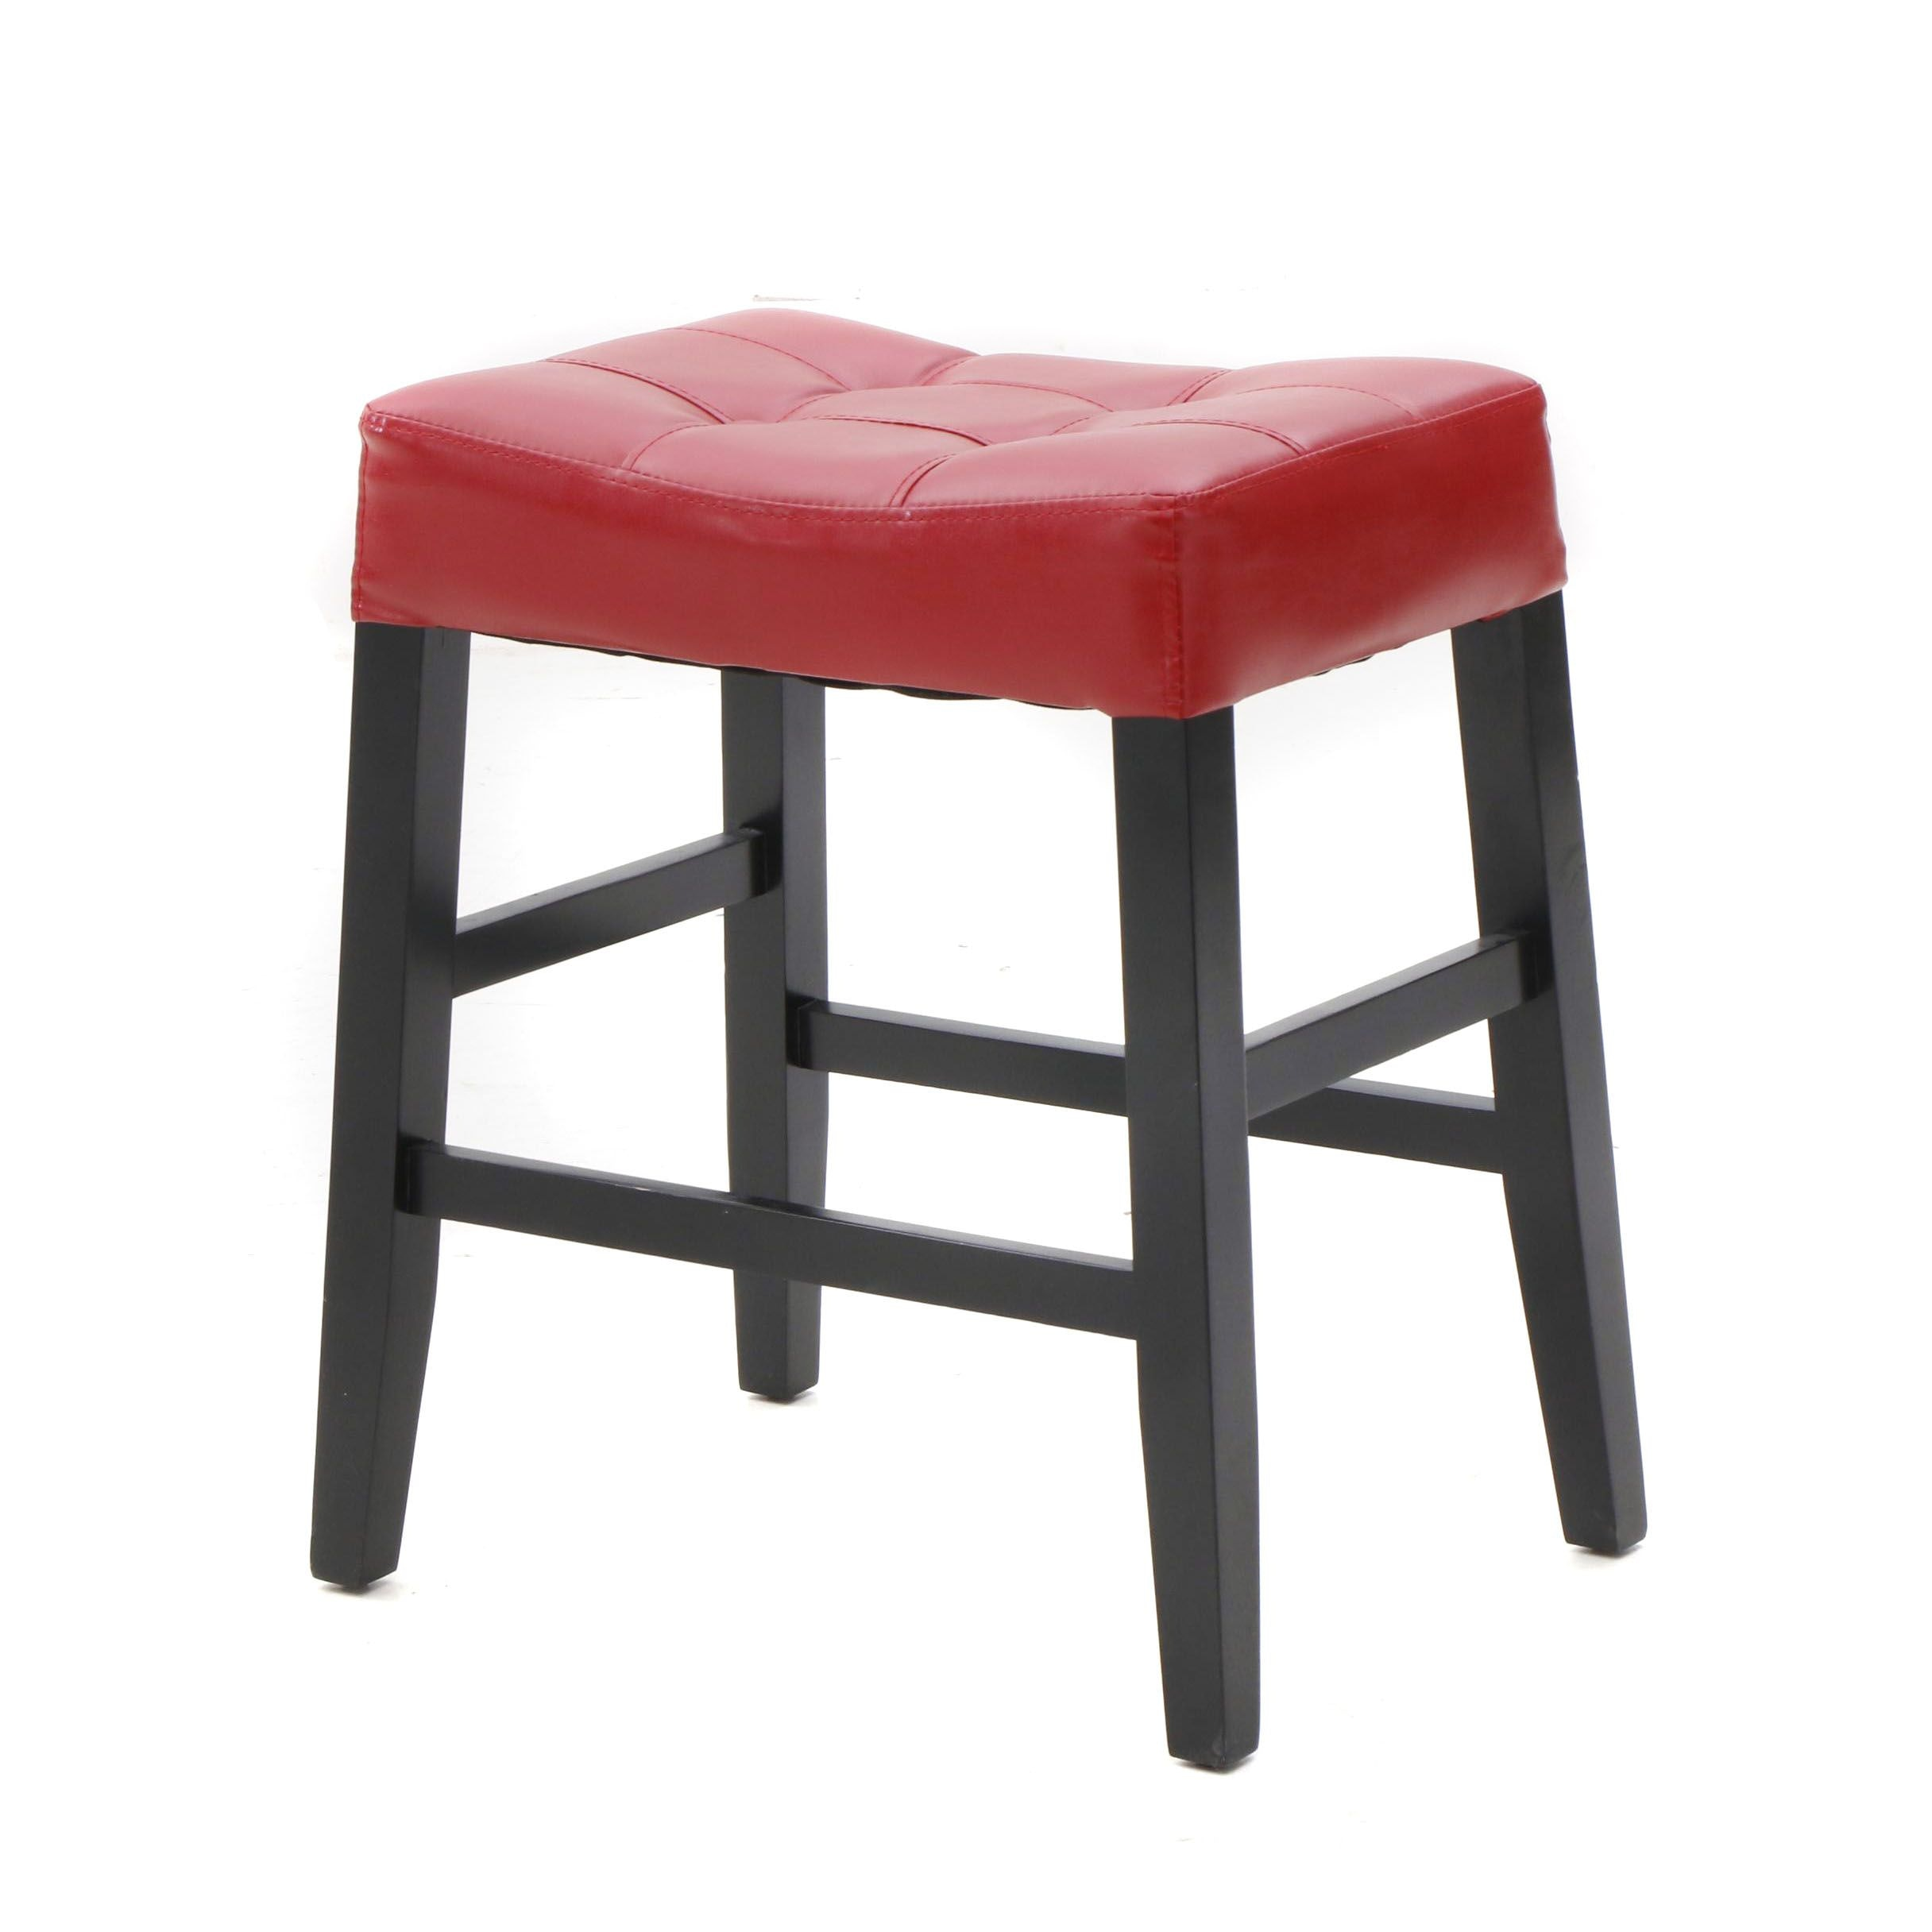 At Home Upholstered Bar Stool in Red